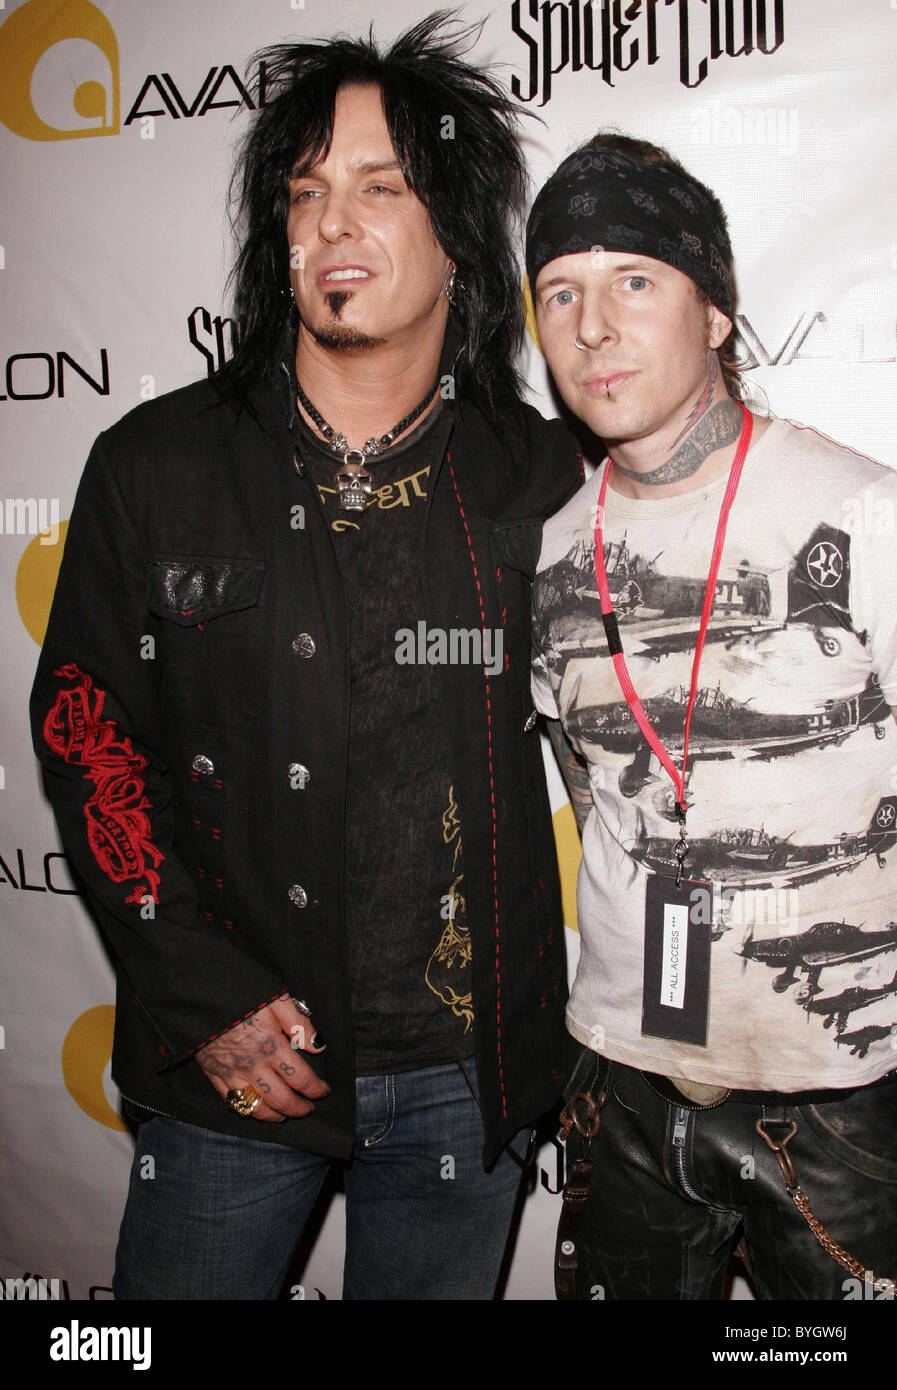 Nikki Sixx And Todd Waters Junker Designs Fall 2007 Fashion Show Stock Photo Royalty Free Image